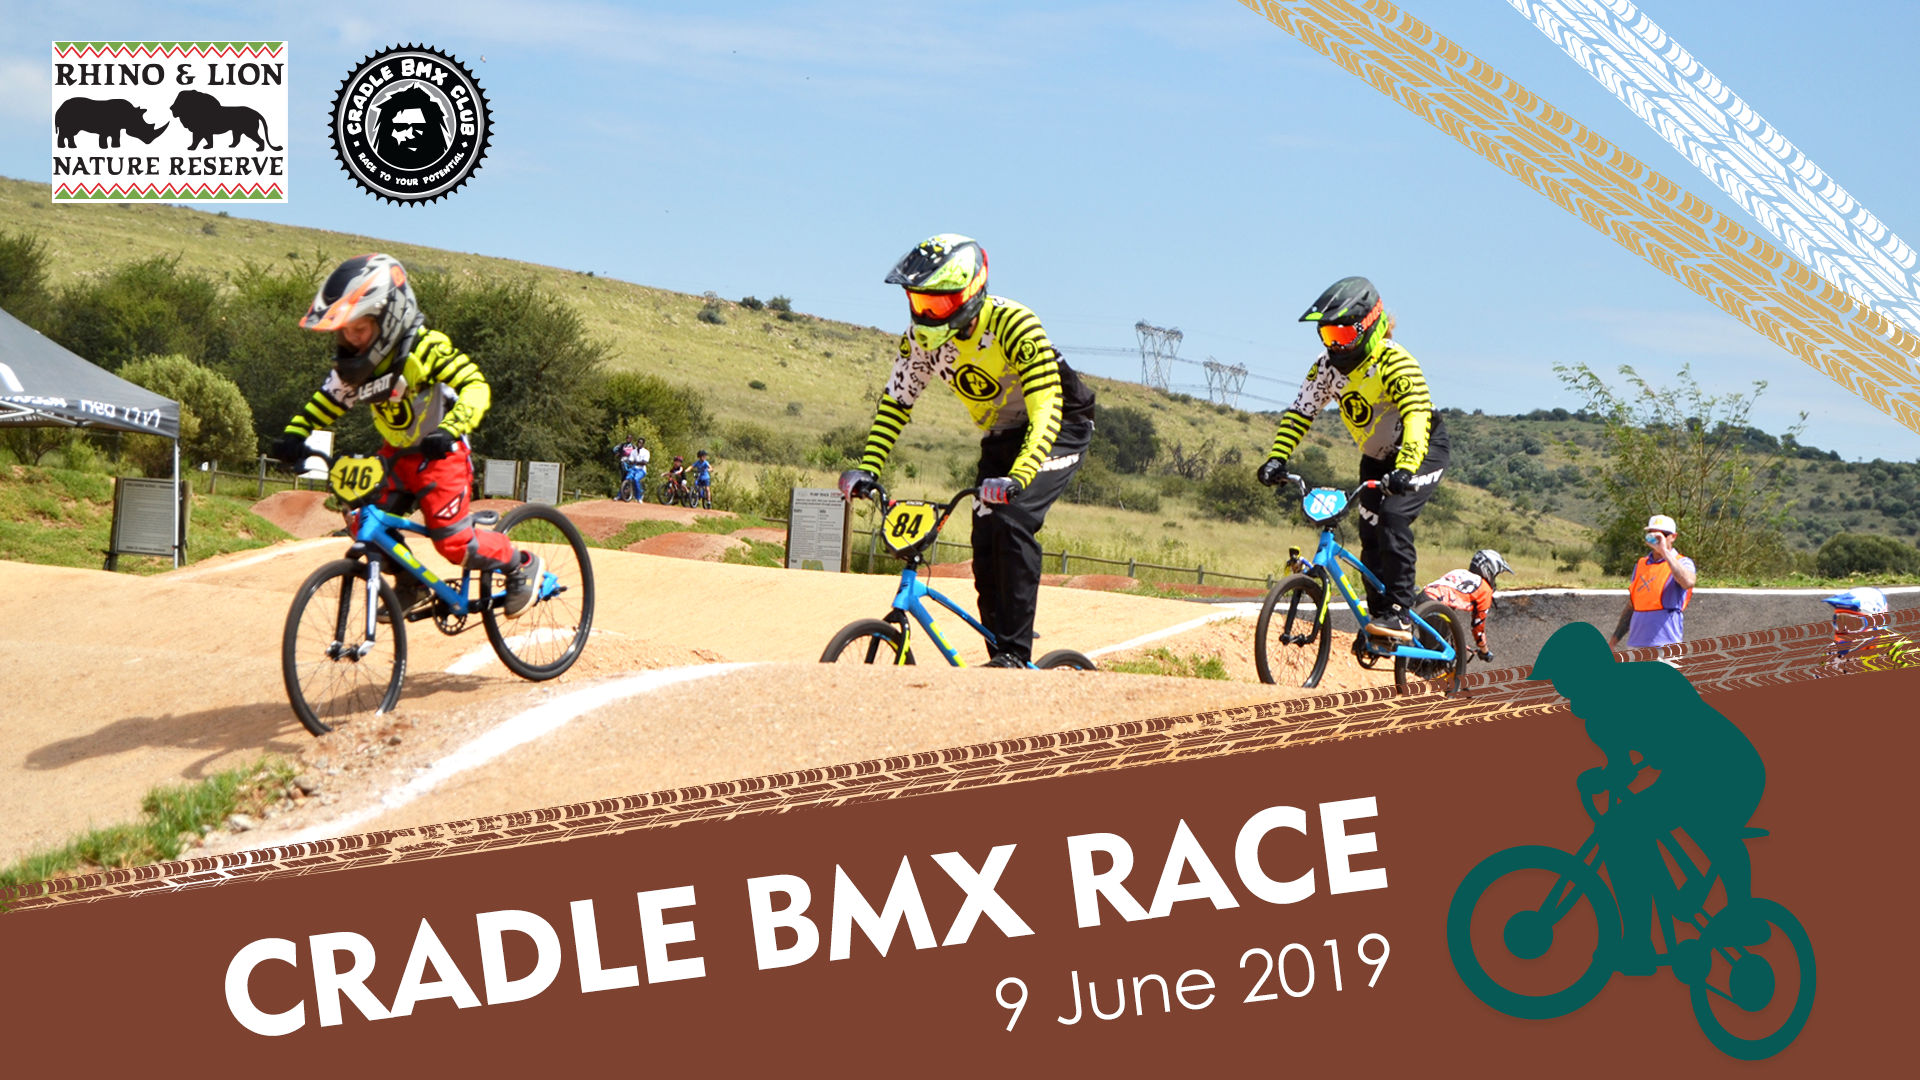 Come join in the fun at the Cradle Bike Park's BMX 2nd Club Race this Sunday, 9 June 2019